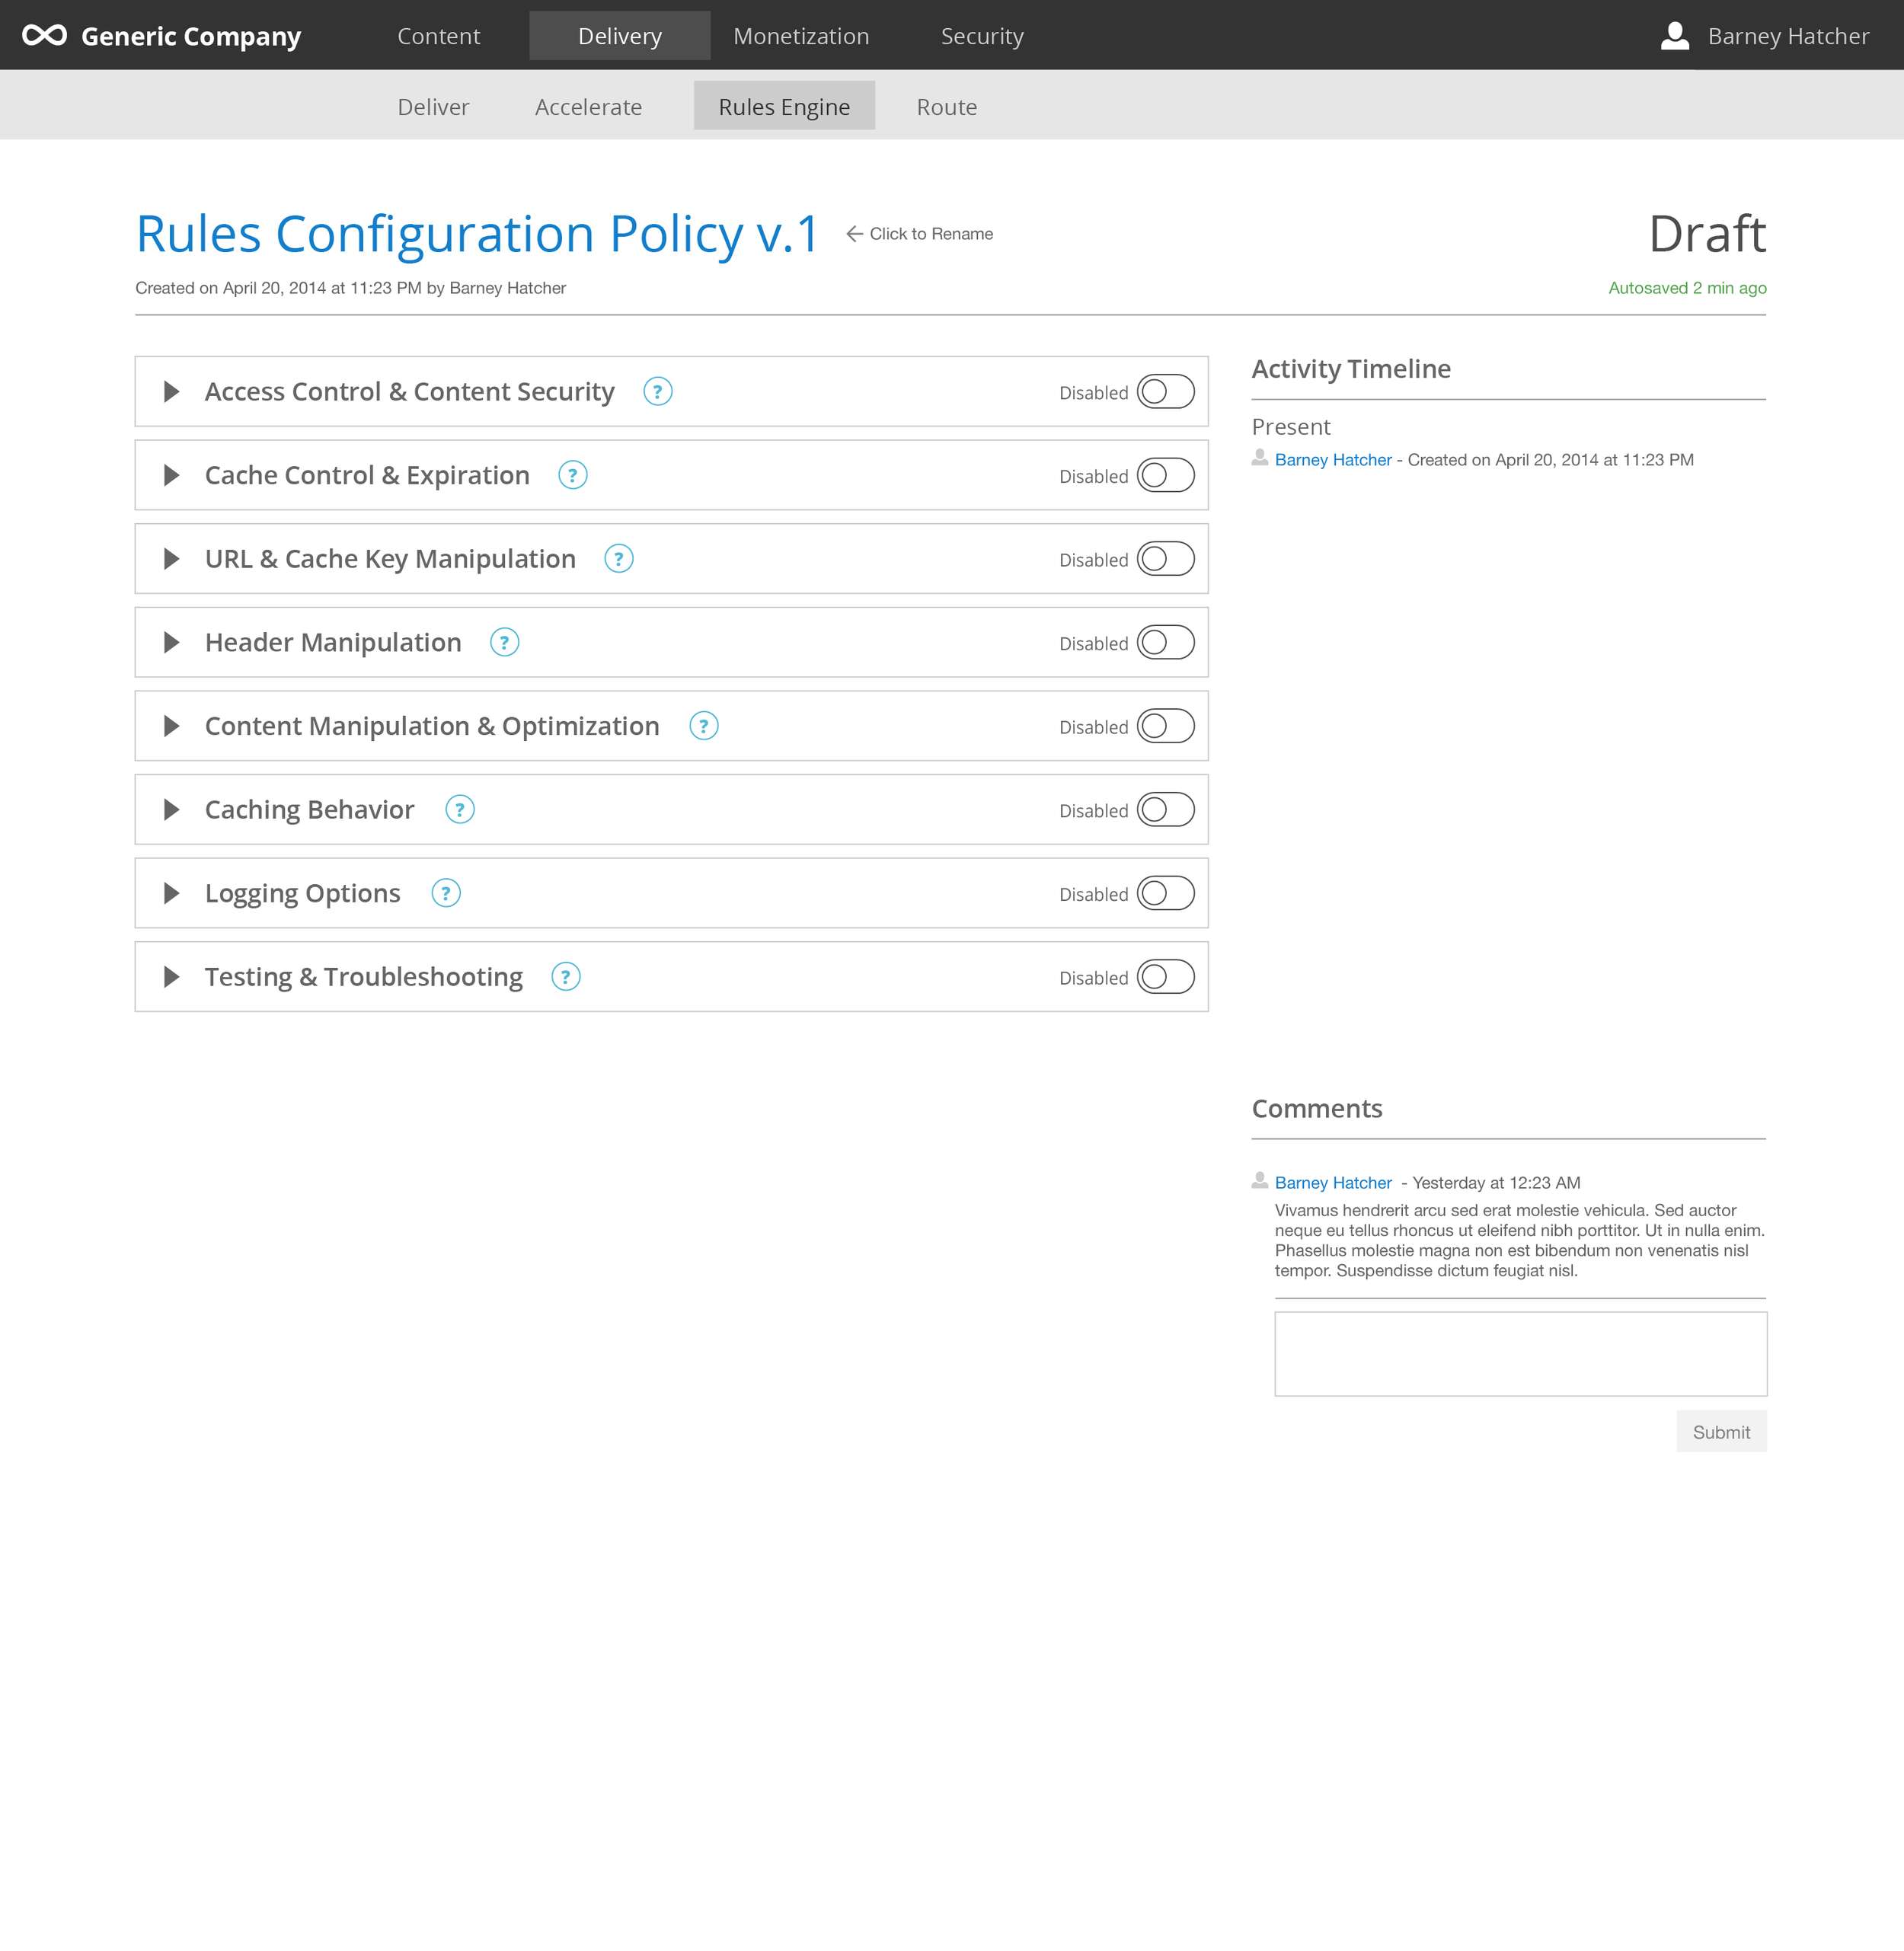 ux-rules-engine-v1_configuration policy-draft-all disabled.png